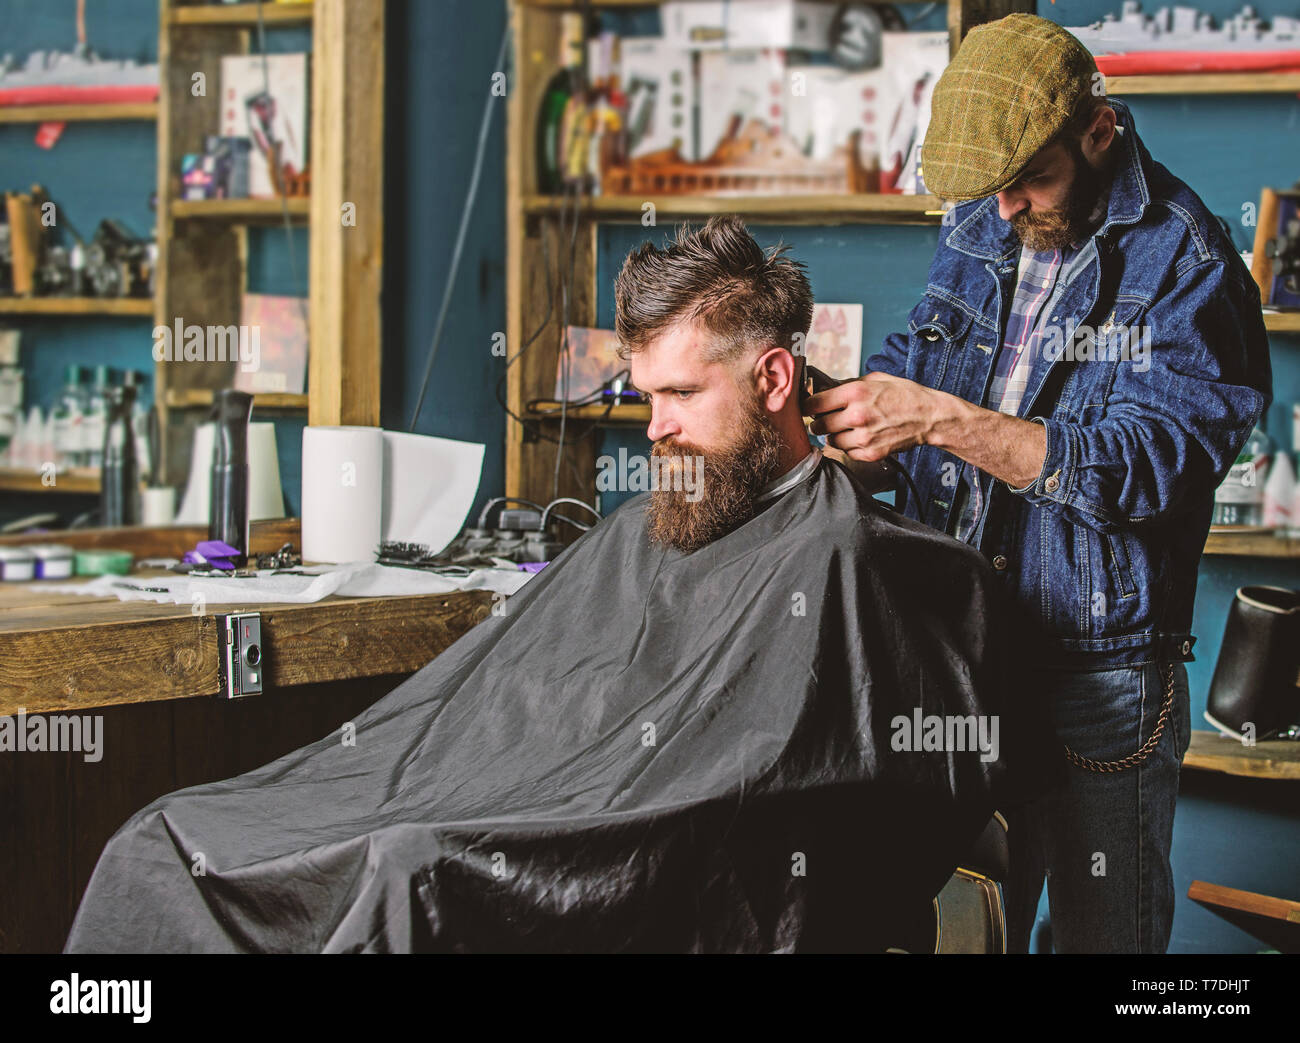 Barber with hair clipper works on haircut of bearded guy, retro barbershop background. Hipster hairstyle concept. Hipster client getting haircut. Barber with clipper trimming hair on nape of client. - Stock Image